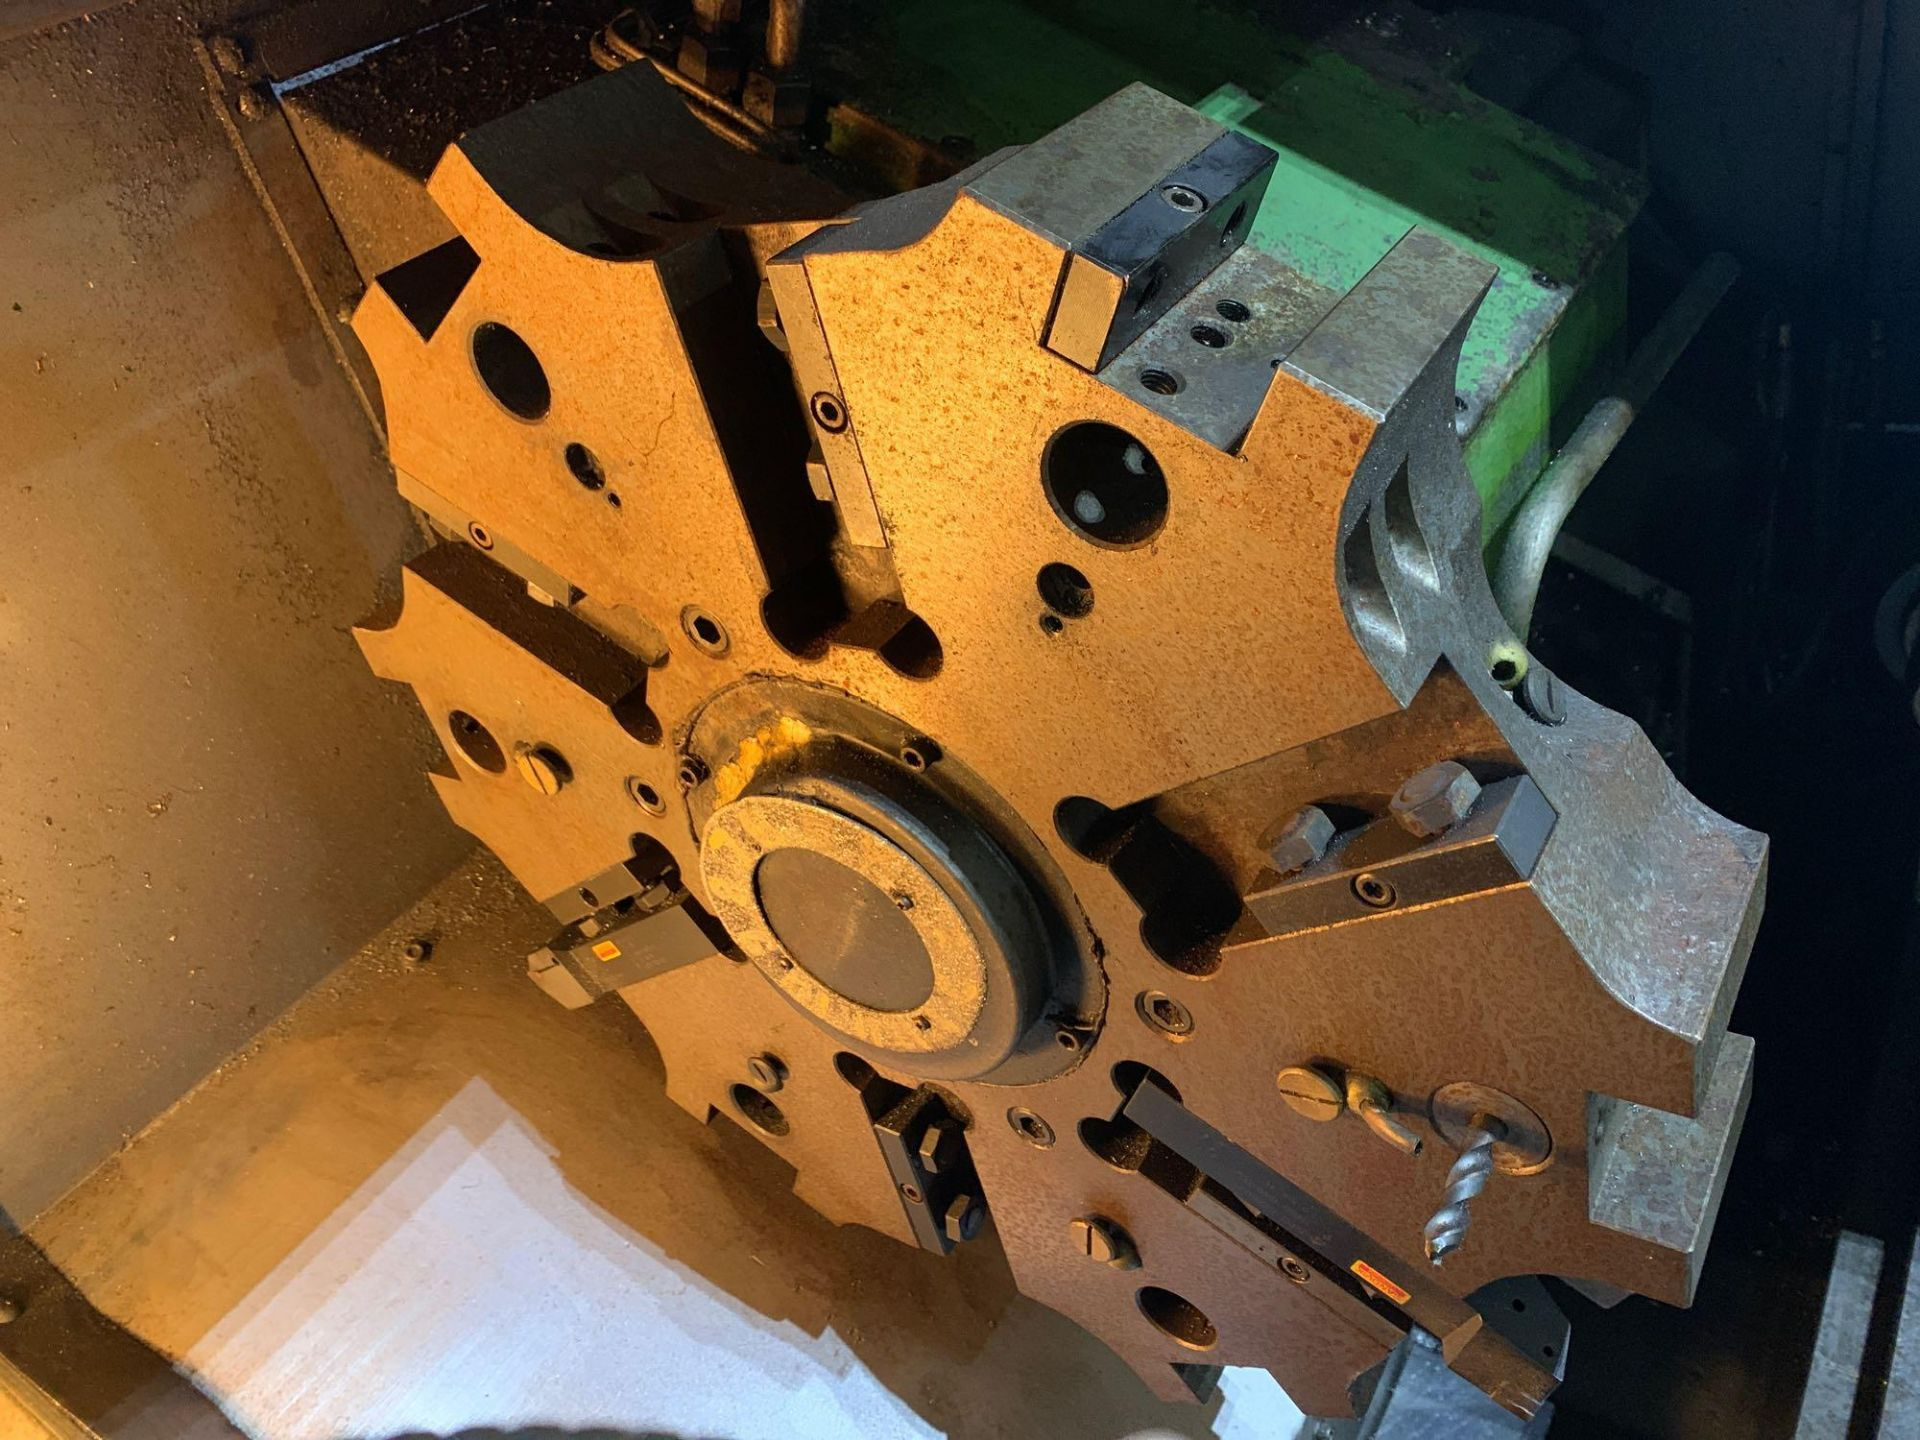 IKEGAI AX-15Z CNC Slant Bed Turning Center Serial Number: 50130V 2-Axis Machine Fanuc 10T Control 12 - Image 13 of 18